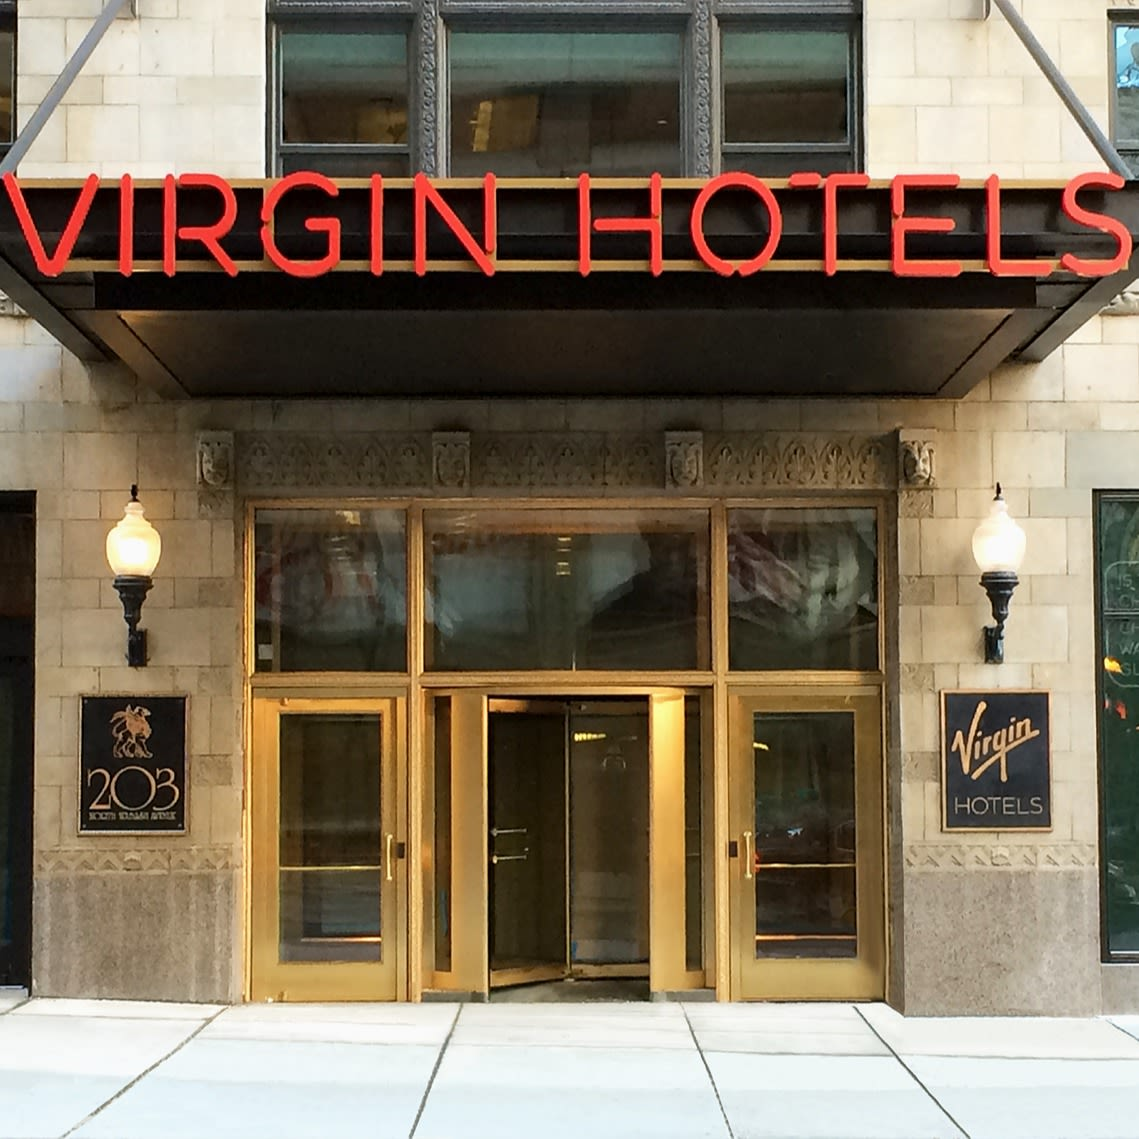 The entrance to Virgin Hotels Chicago